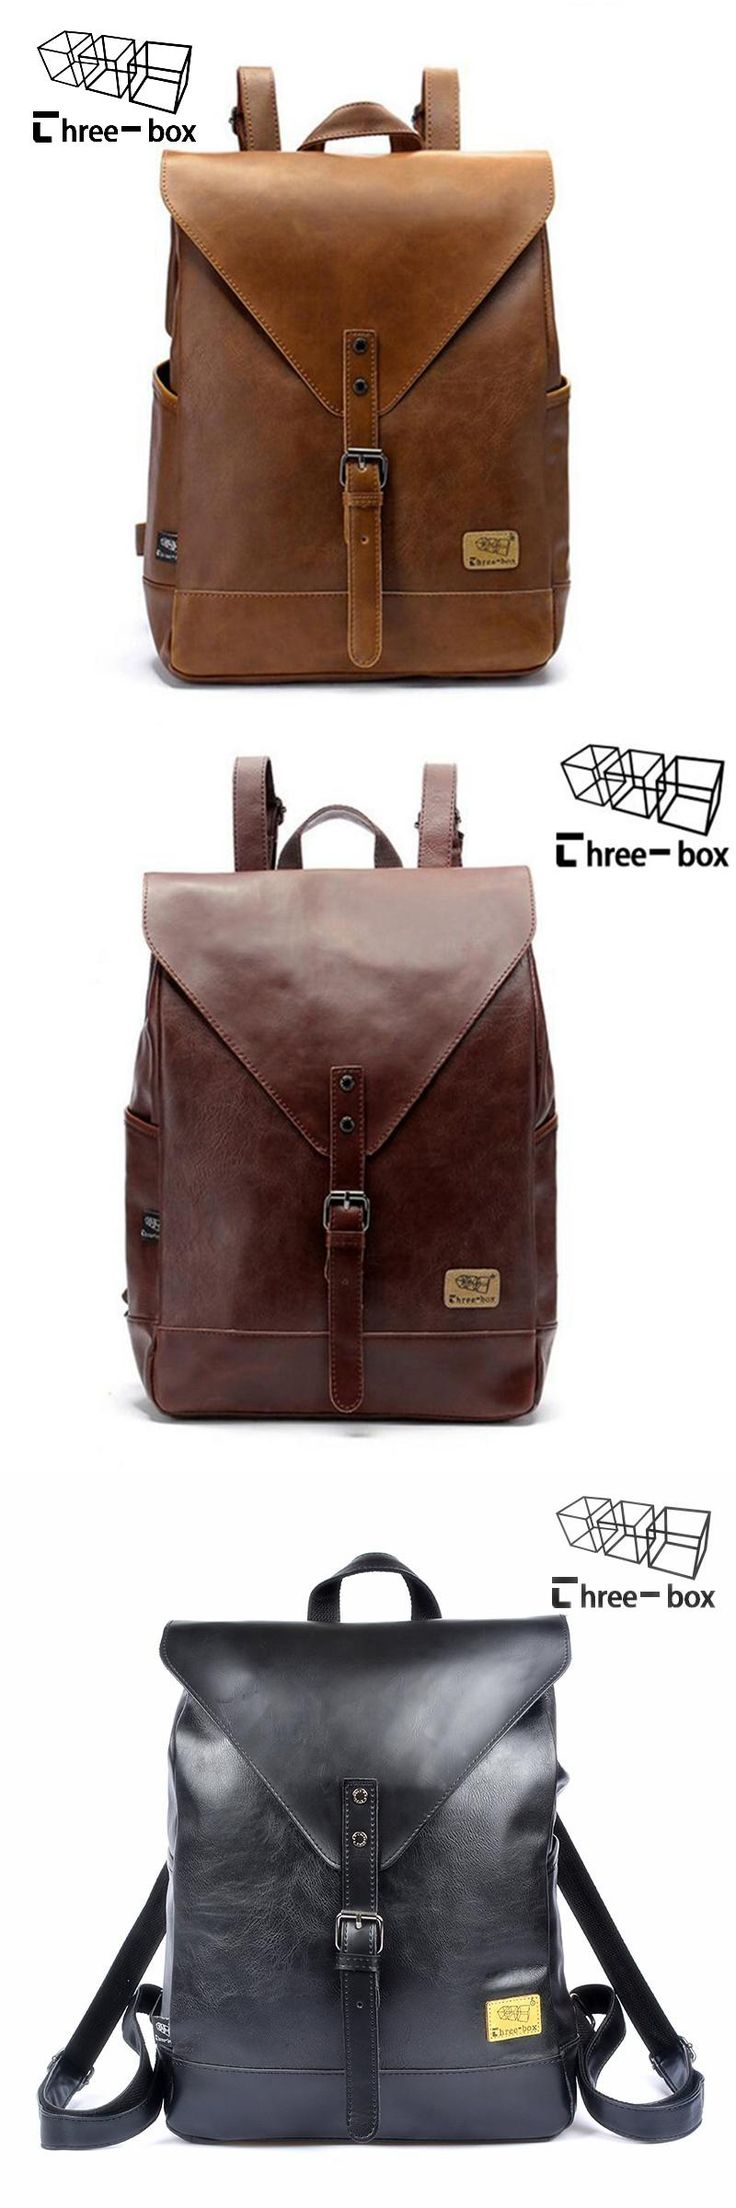 [Visit to Buy] 2017 Hot! Women fashion backpack male travel backpack mochilas school mens leather business bag large laptop shopping travel bag #Advertisement